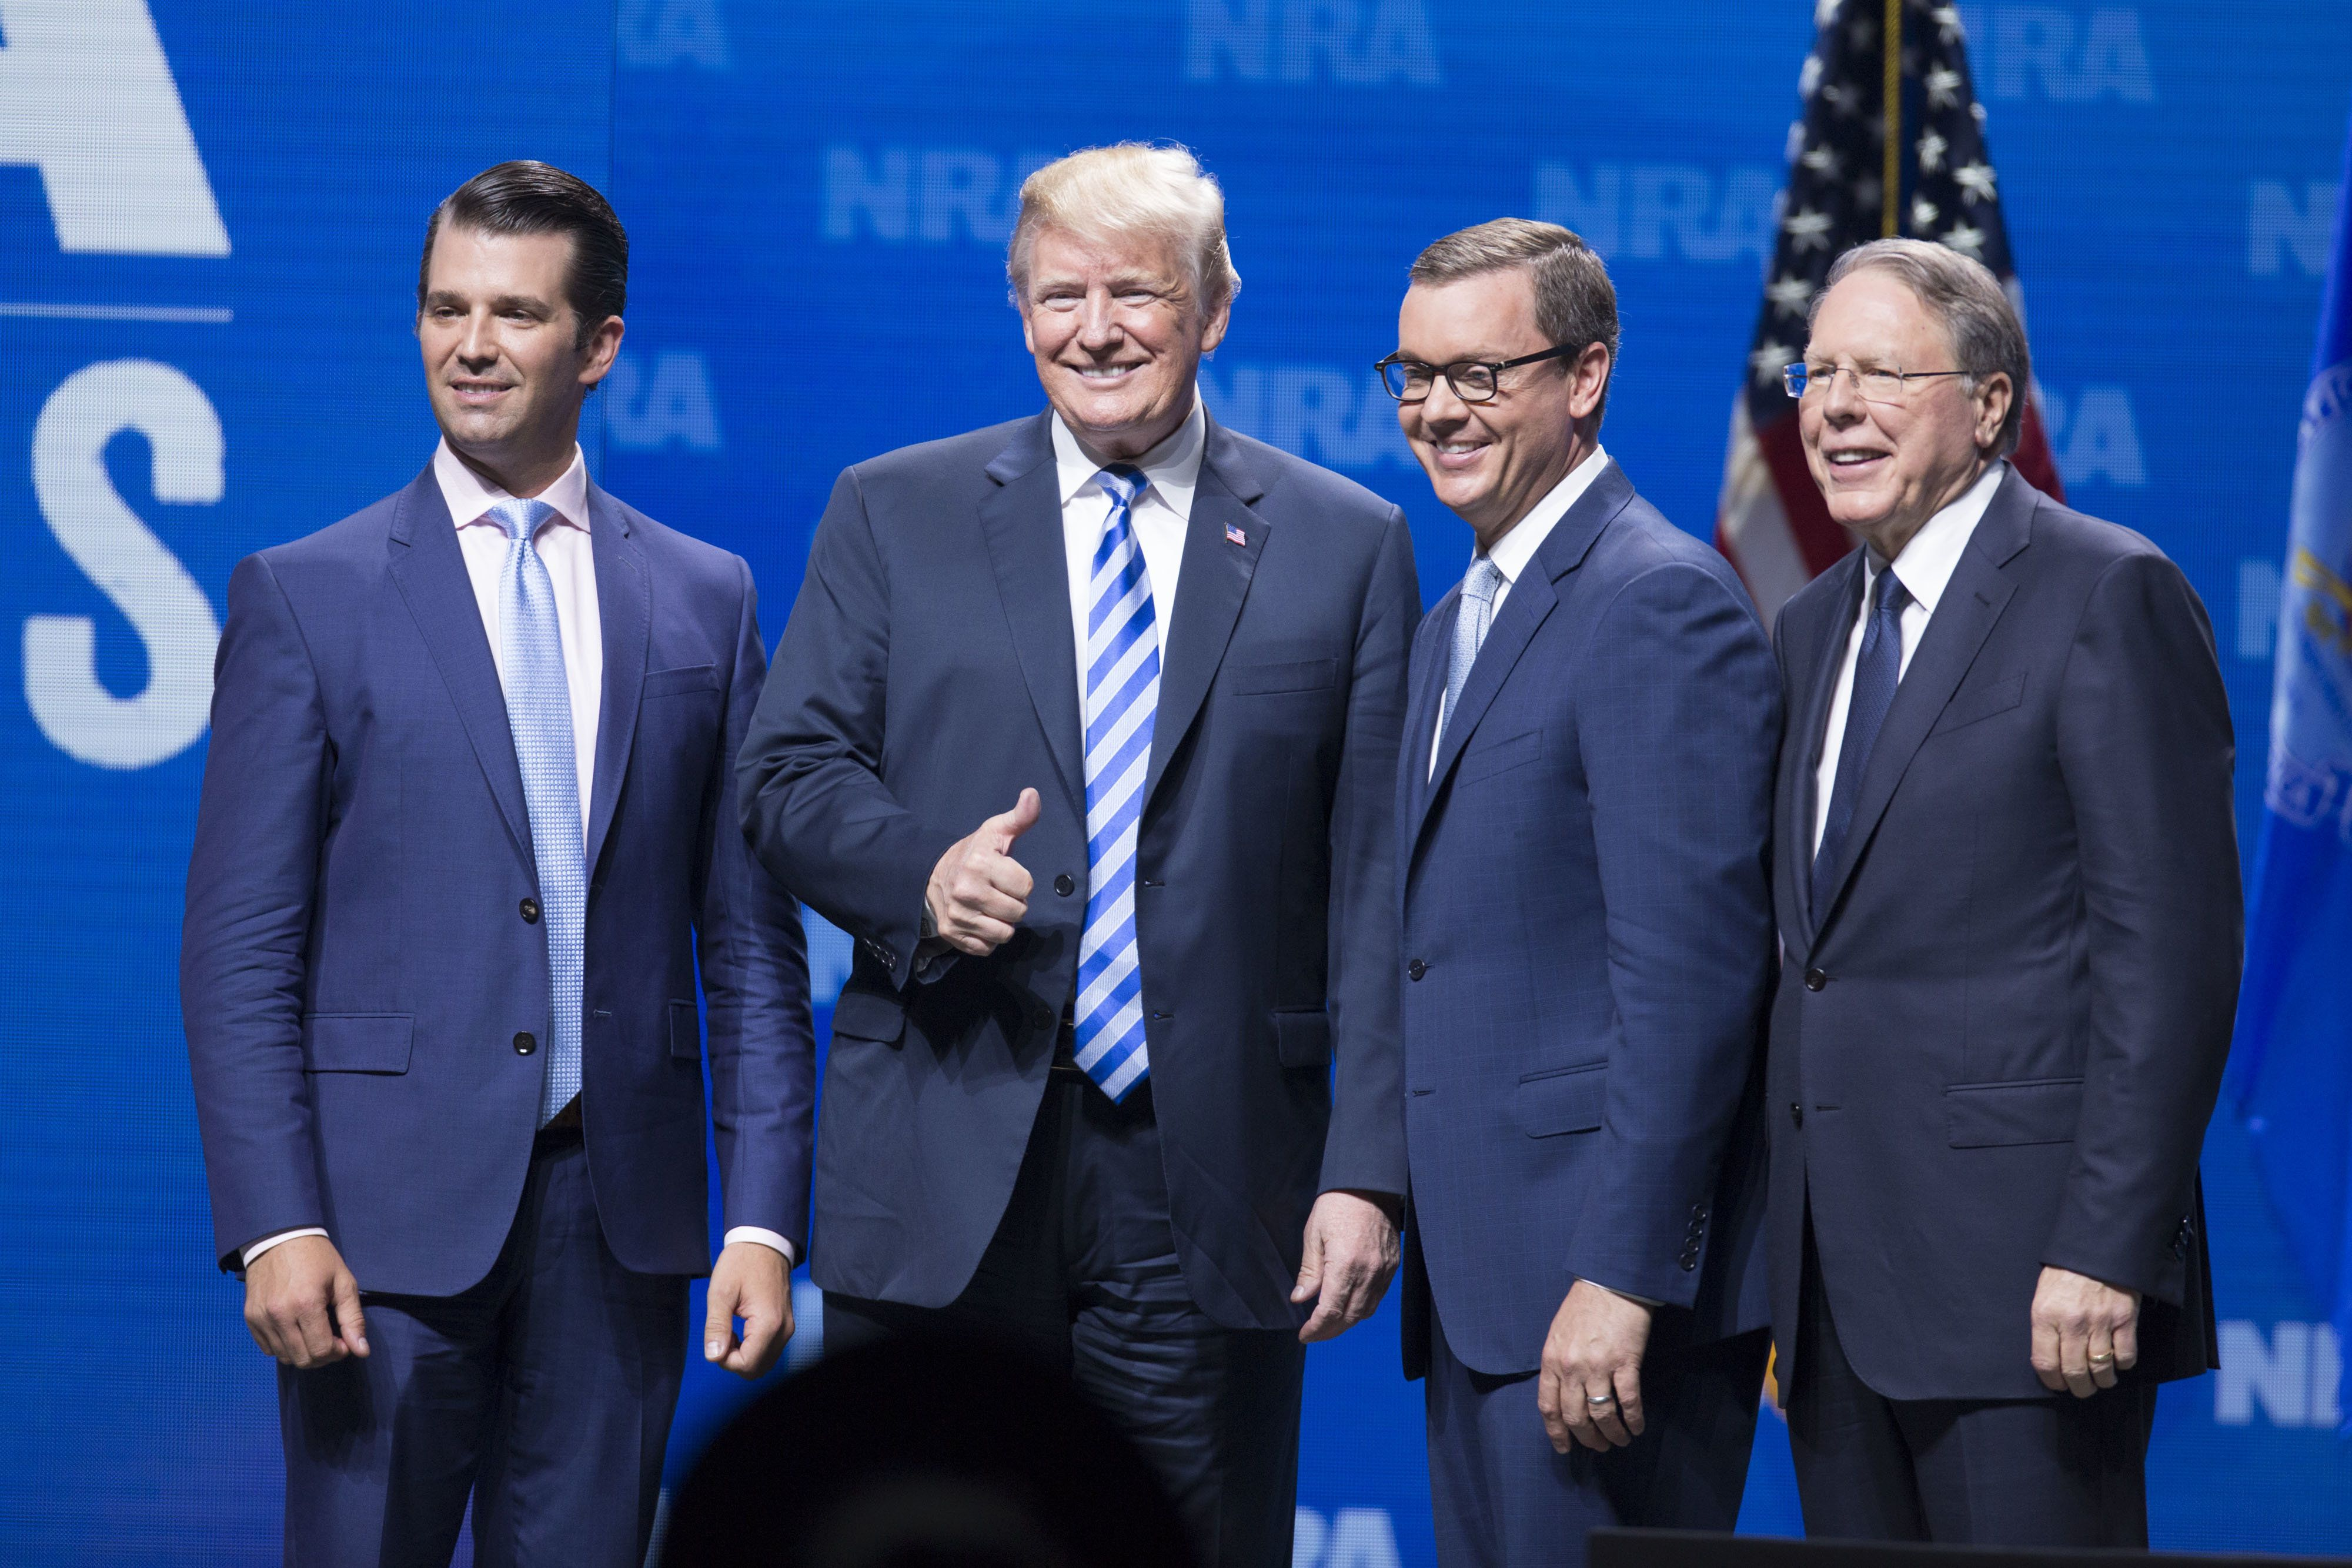 Donald Trump Jr., executive vice president of development and acquisitions with the Trump Organization Inc., from left, U.S. President Donald Trump, Chris Cox, chief lobbyist of the National Rifle Association (NRA), and Wayne LaPierre, chief executive officer of the NRA, stand for a photograph at the National Rifle Association Institute for Legislative Action (NRA-ILA) Leadership Forum during the NRA annual meeting in Dallas, Texas, U.S., on Friday, May 4, 2018. PresidentDonald Trumpdelivered a strong sign of support for the National Rifle Association at its annual meeting on Friday, as gun-rights advocates regroup in the wake of the mass shooting at a Florida high school. Photographer: Daniel Acker/Bloomberg via Getty Images